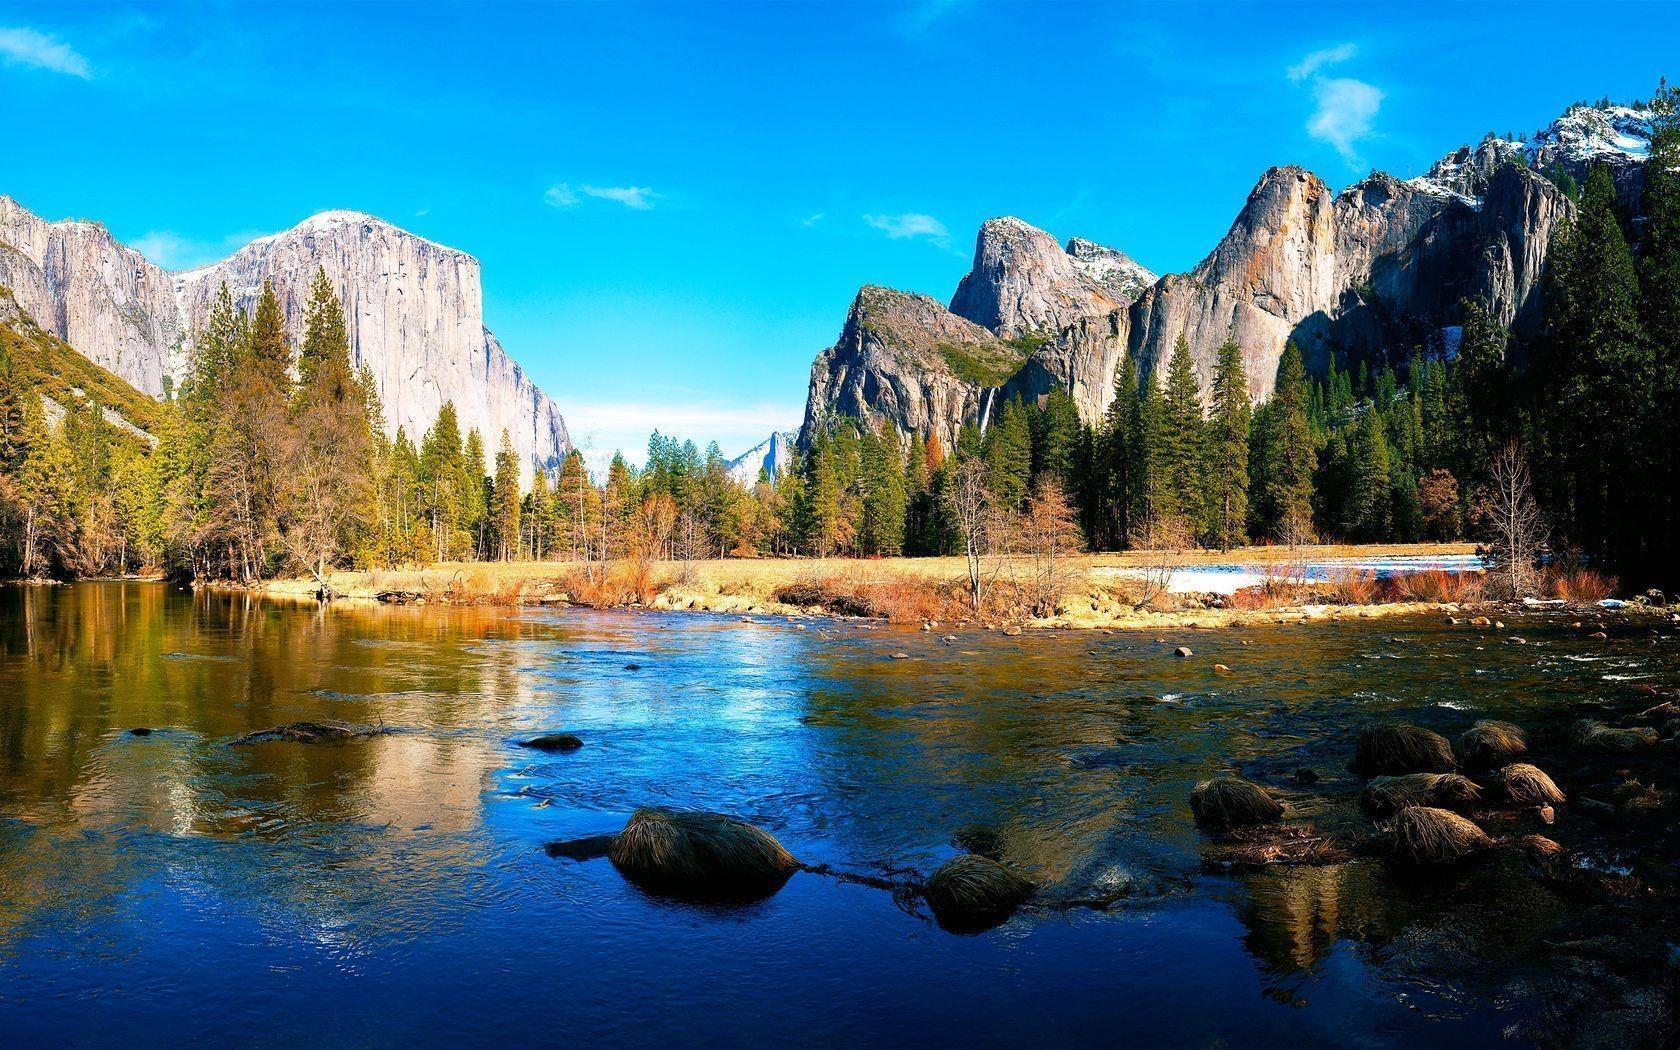 Wilderness Wallpapers, PC, Laptop 40 Wilderness Pictures in FHD ...